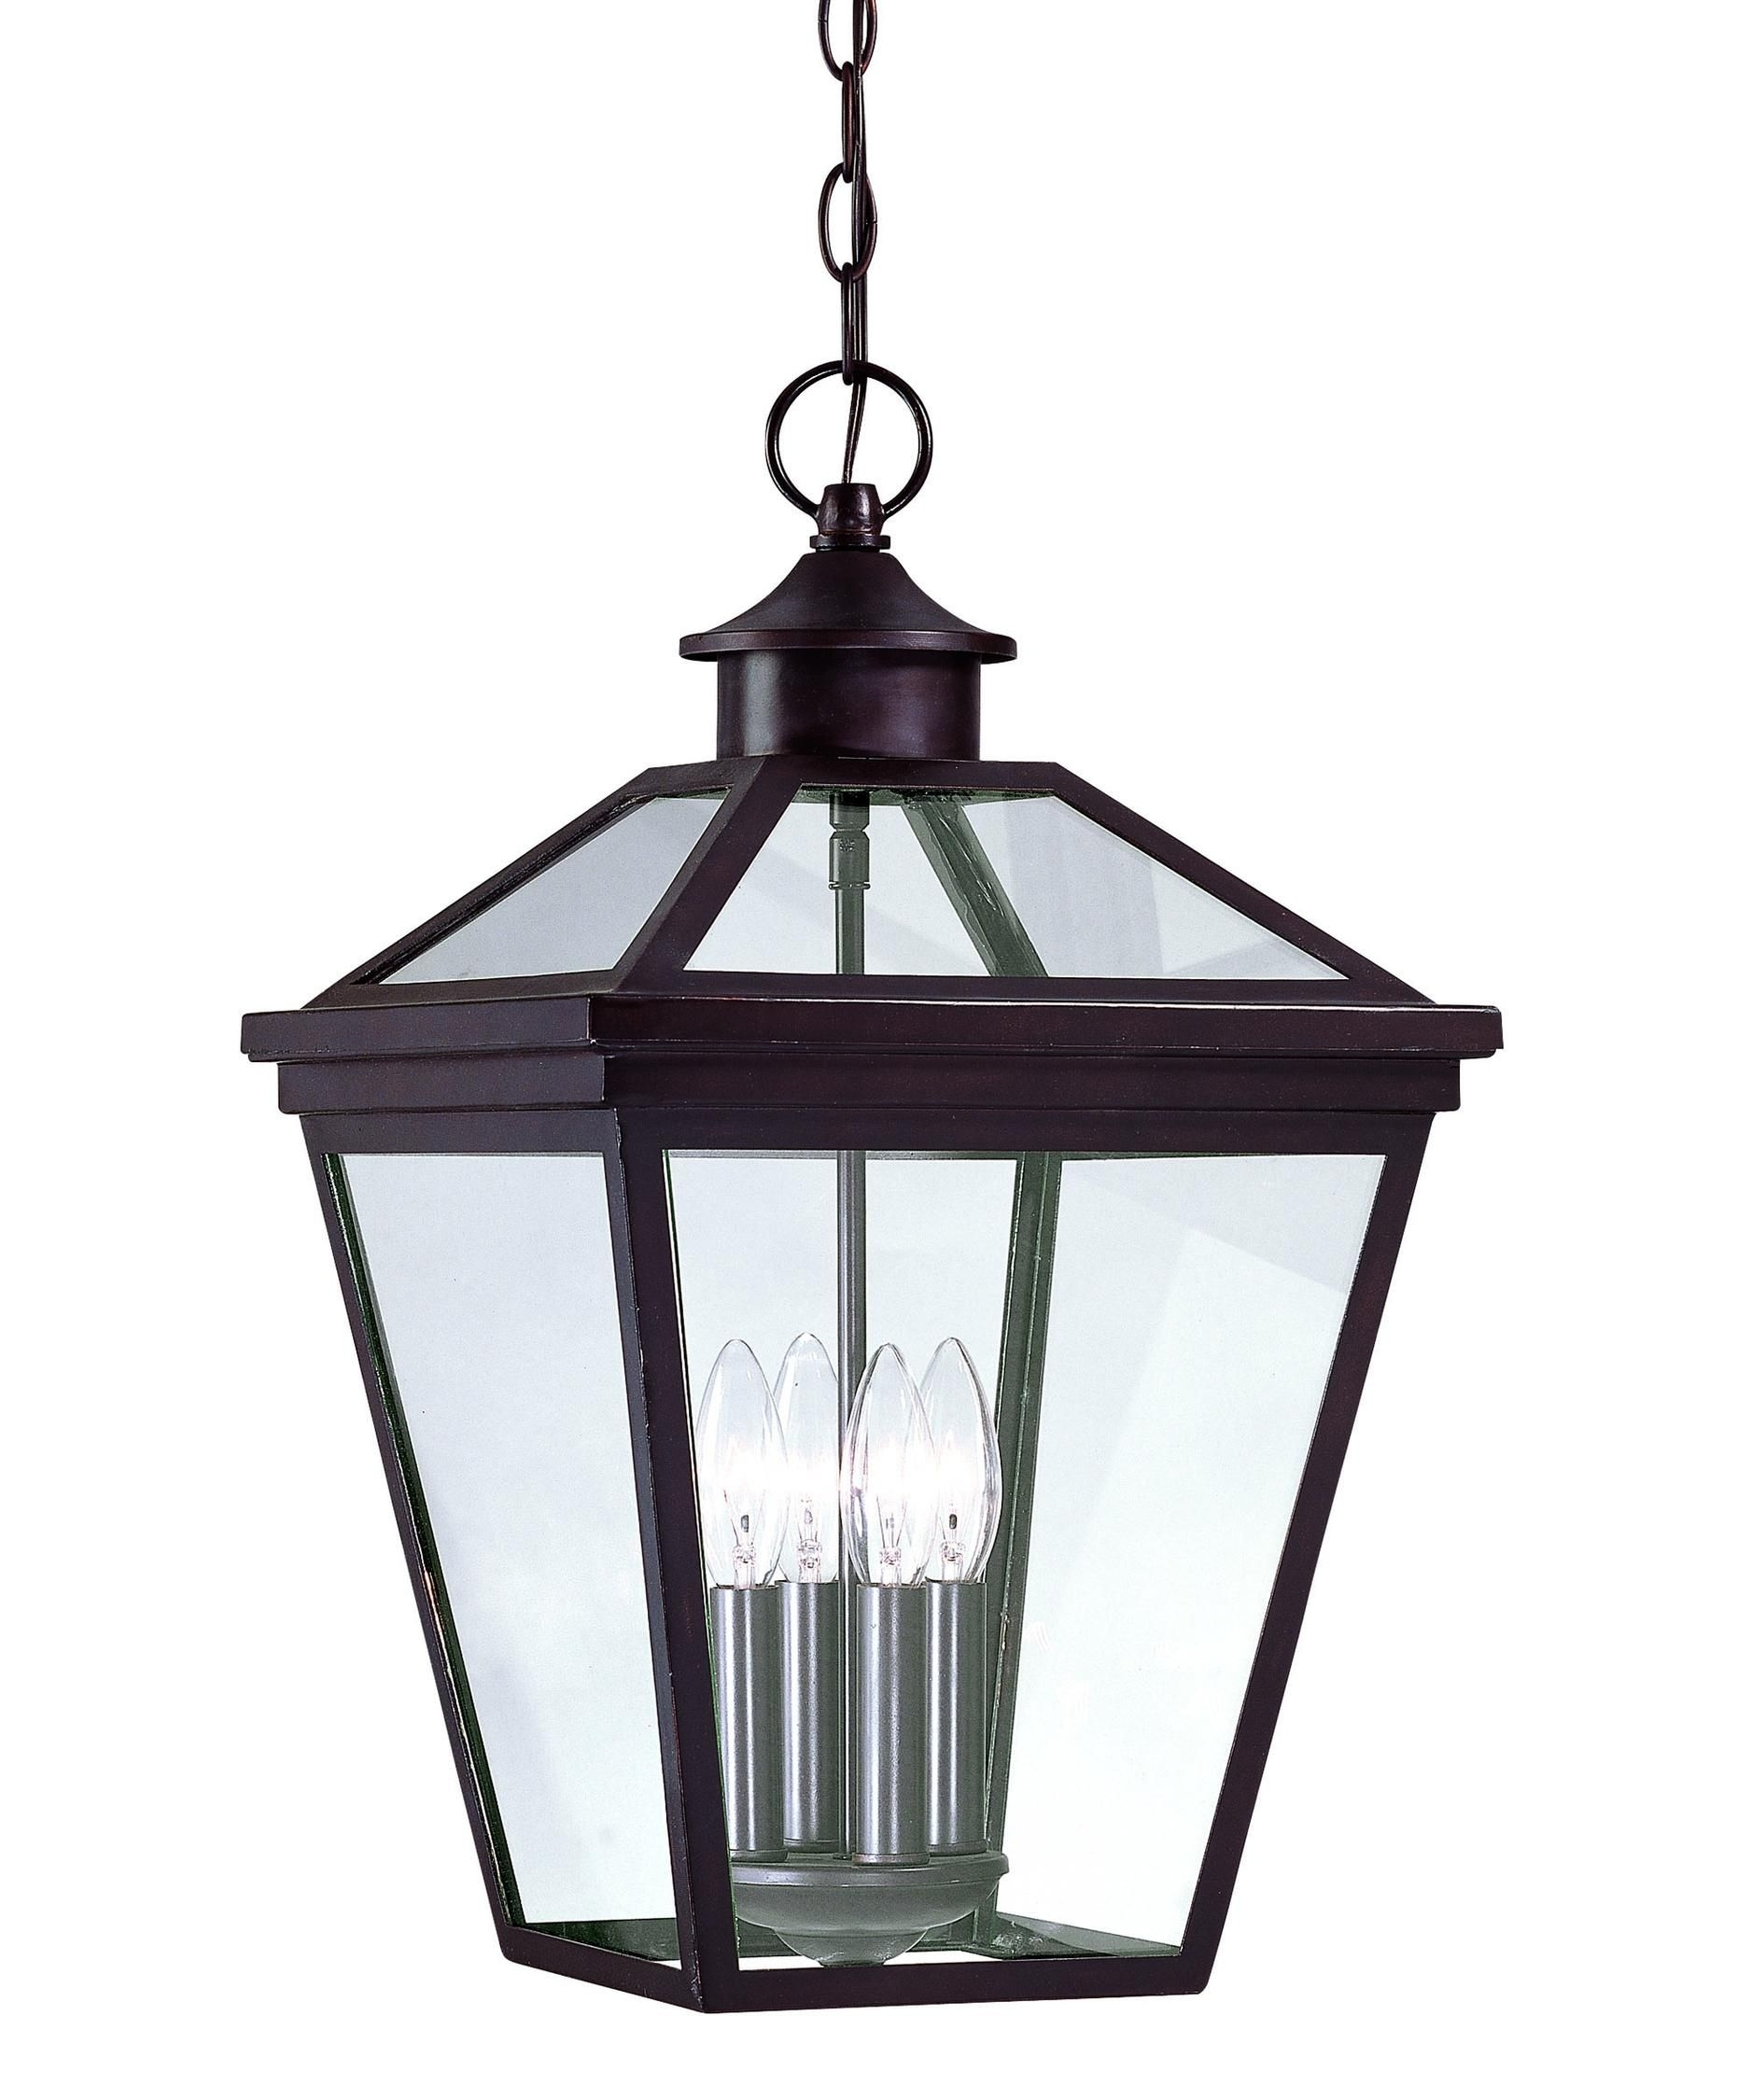 Savoy House Ellijay 4 Light Outdoor Hanging Lantern | Capitol Inside Outdoor Hanging Lights For Porch (View 11 of 15)